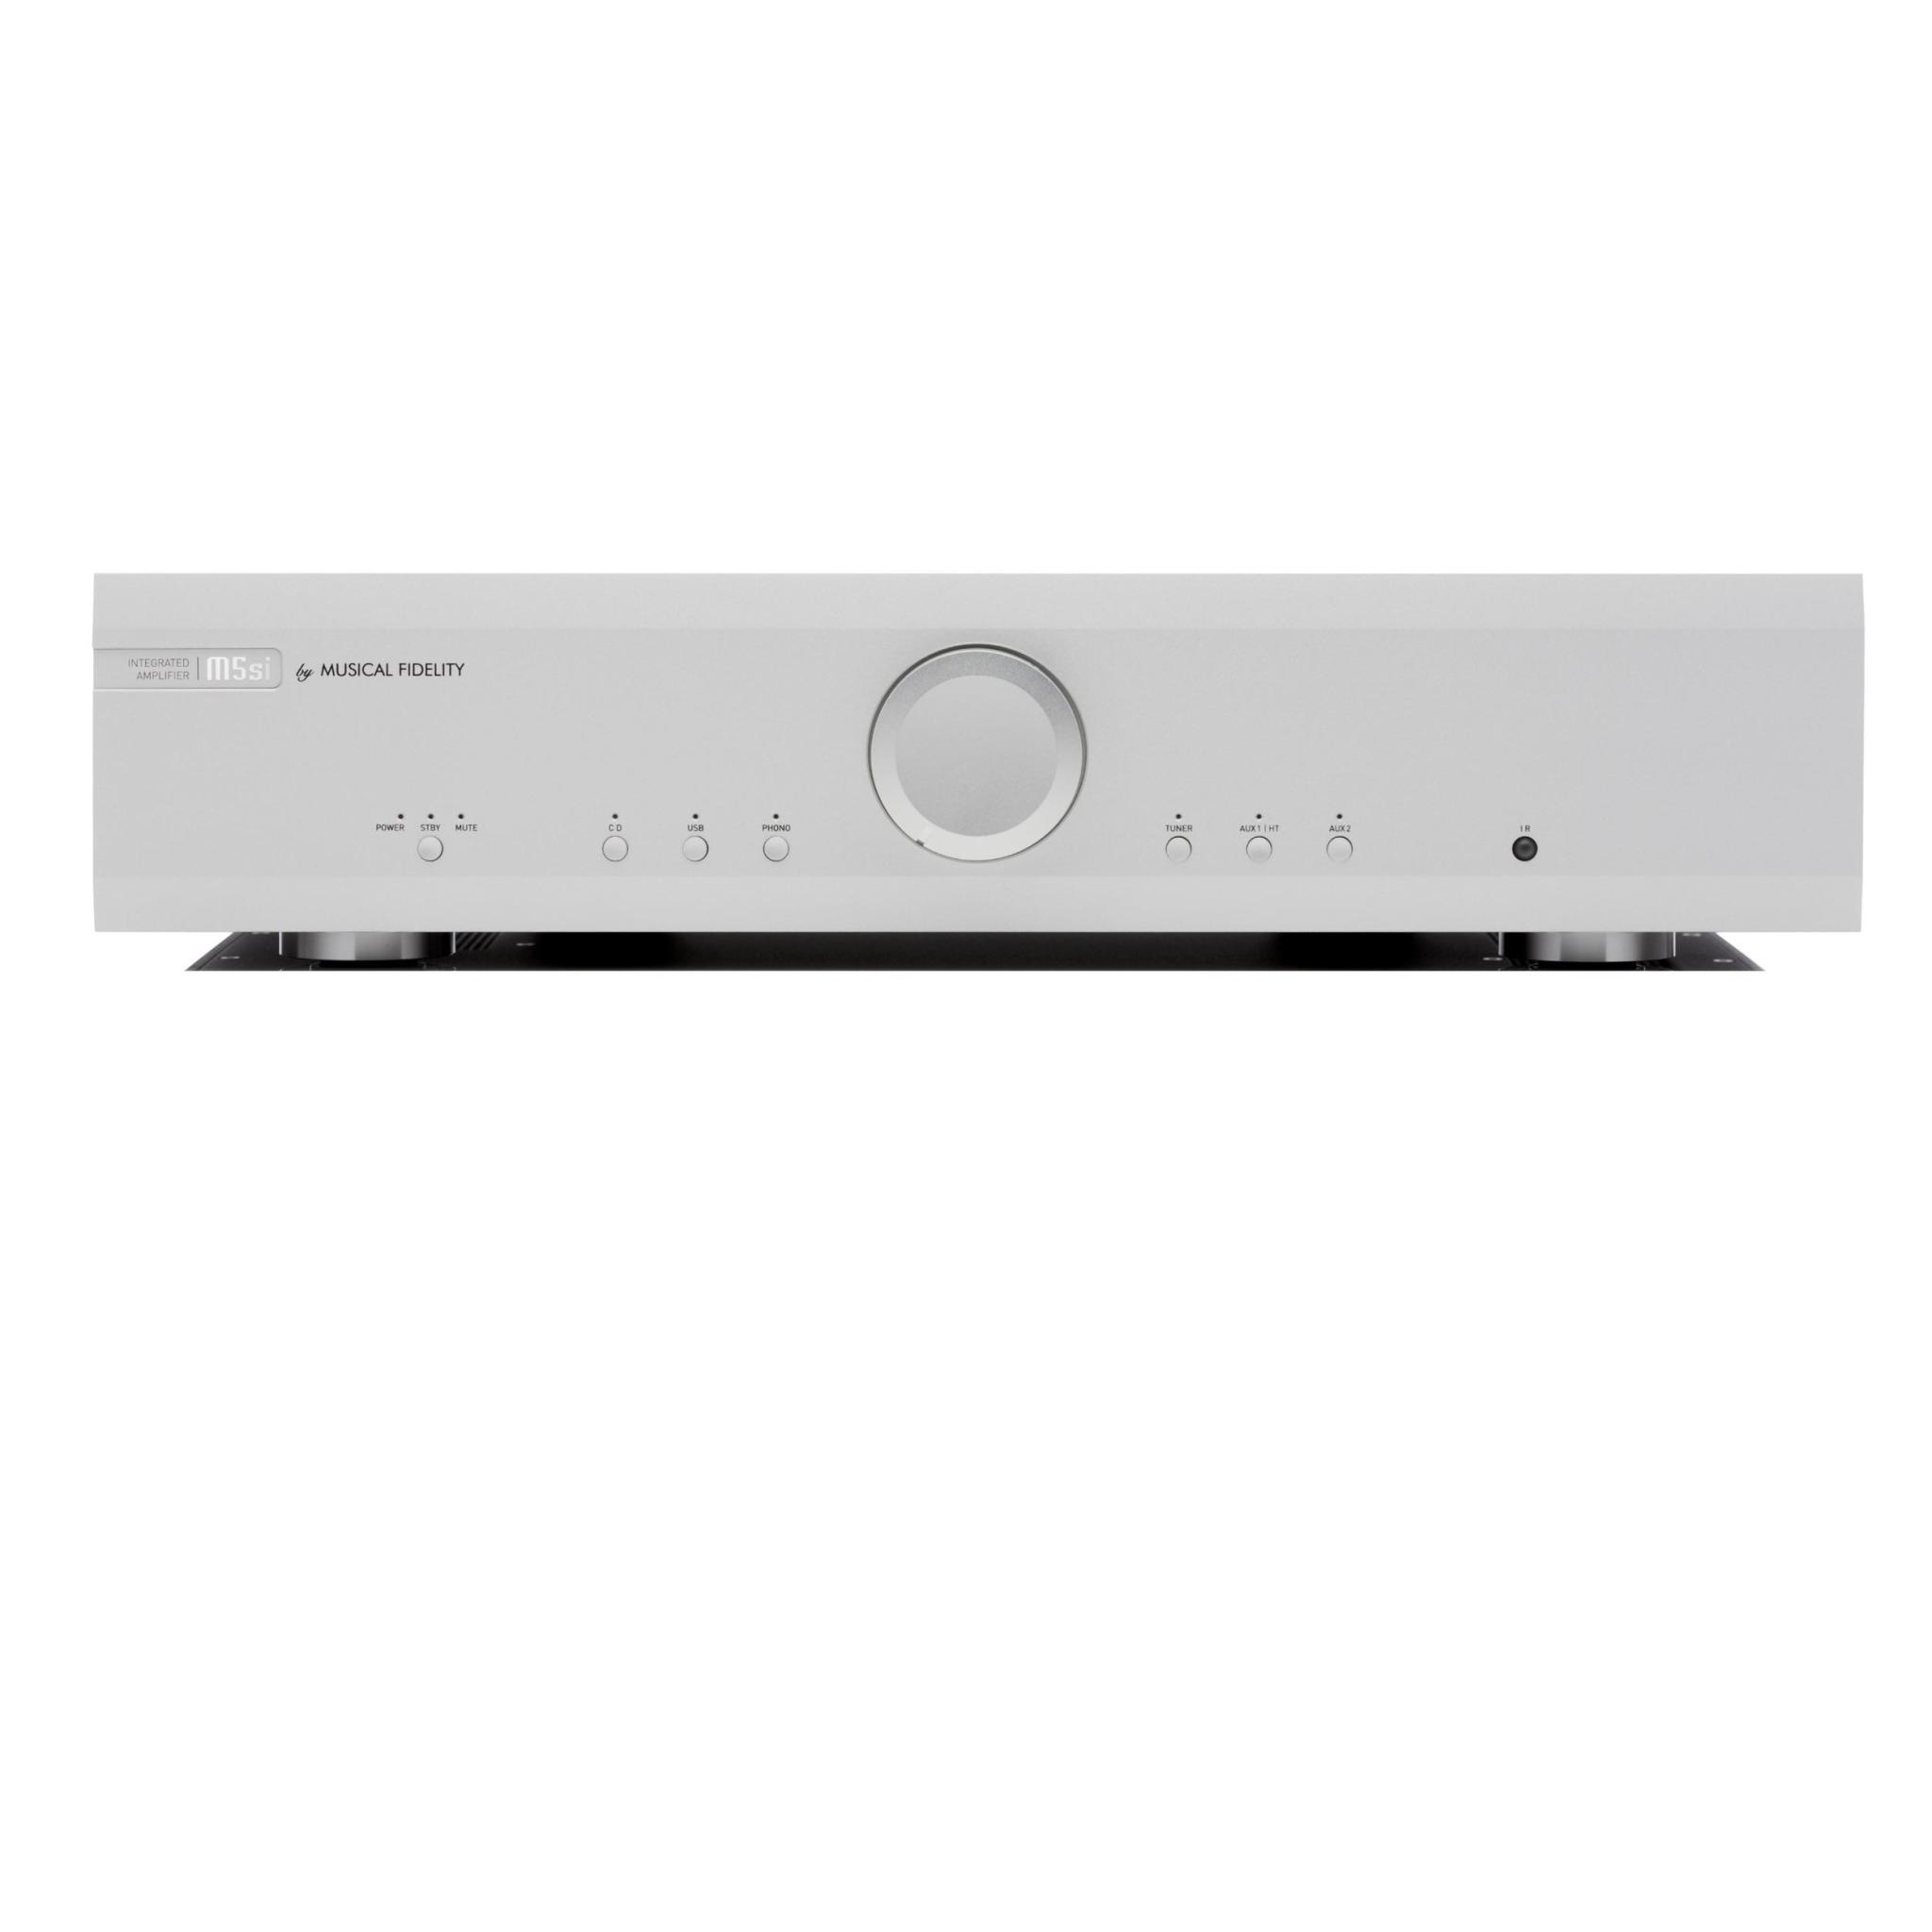 Musical Fidelity M5SI Amplifier